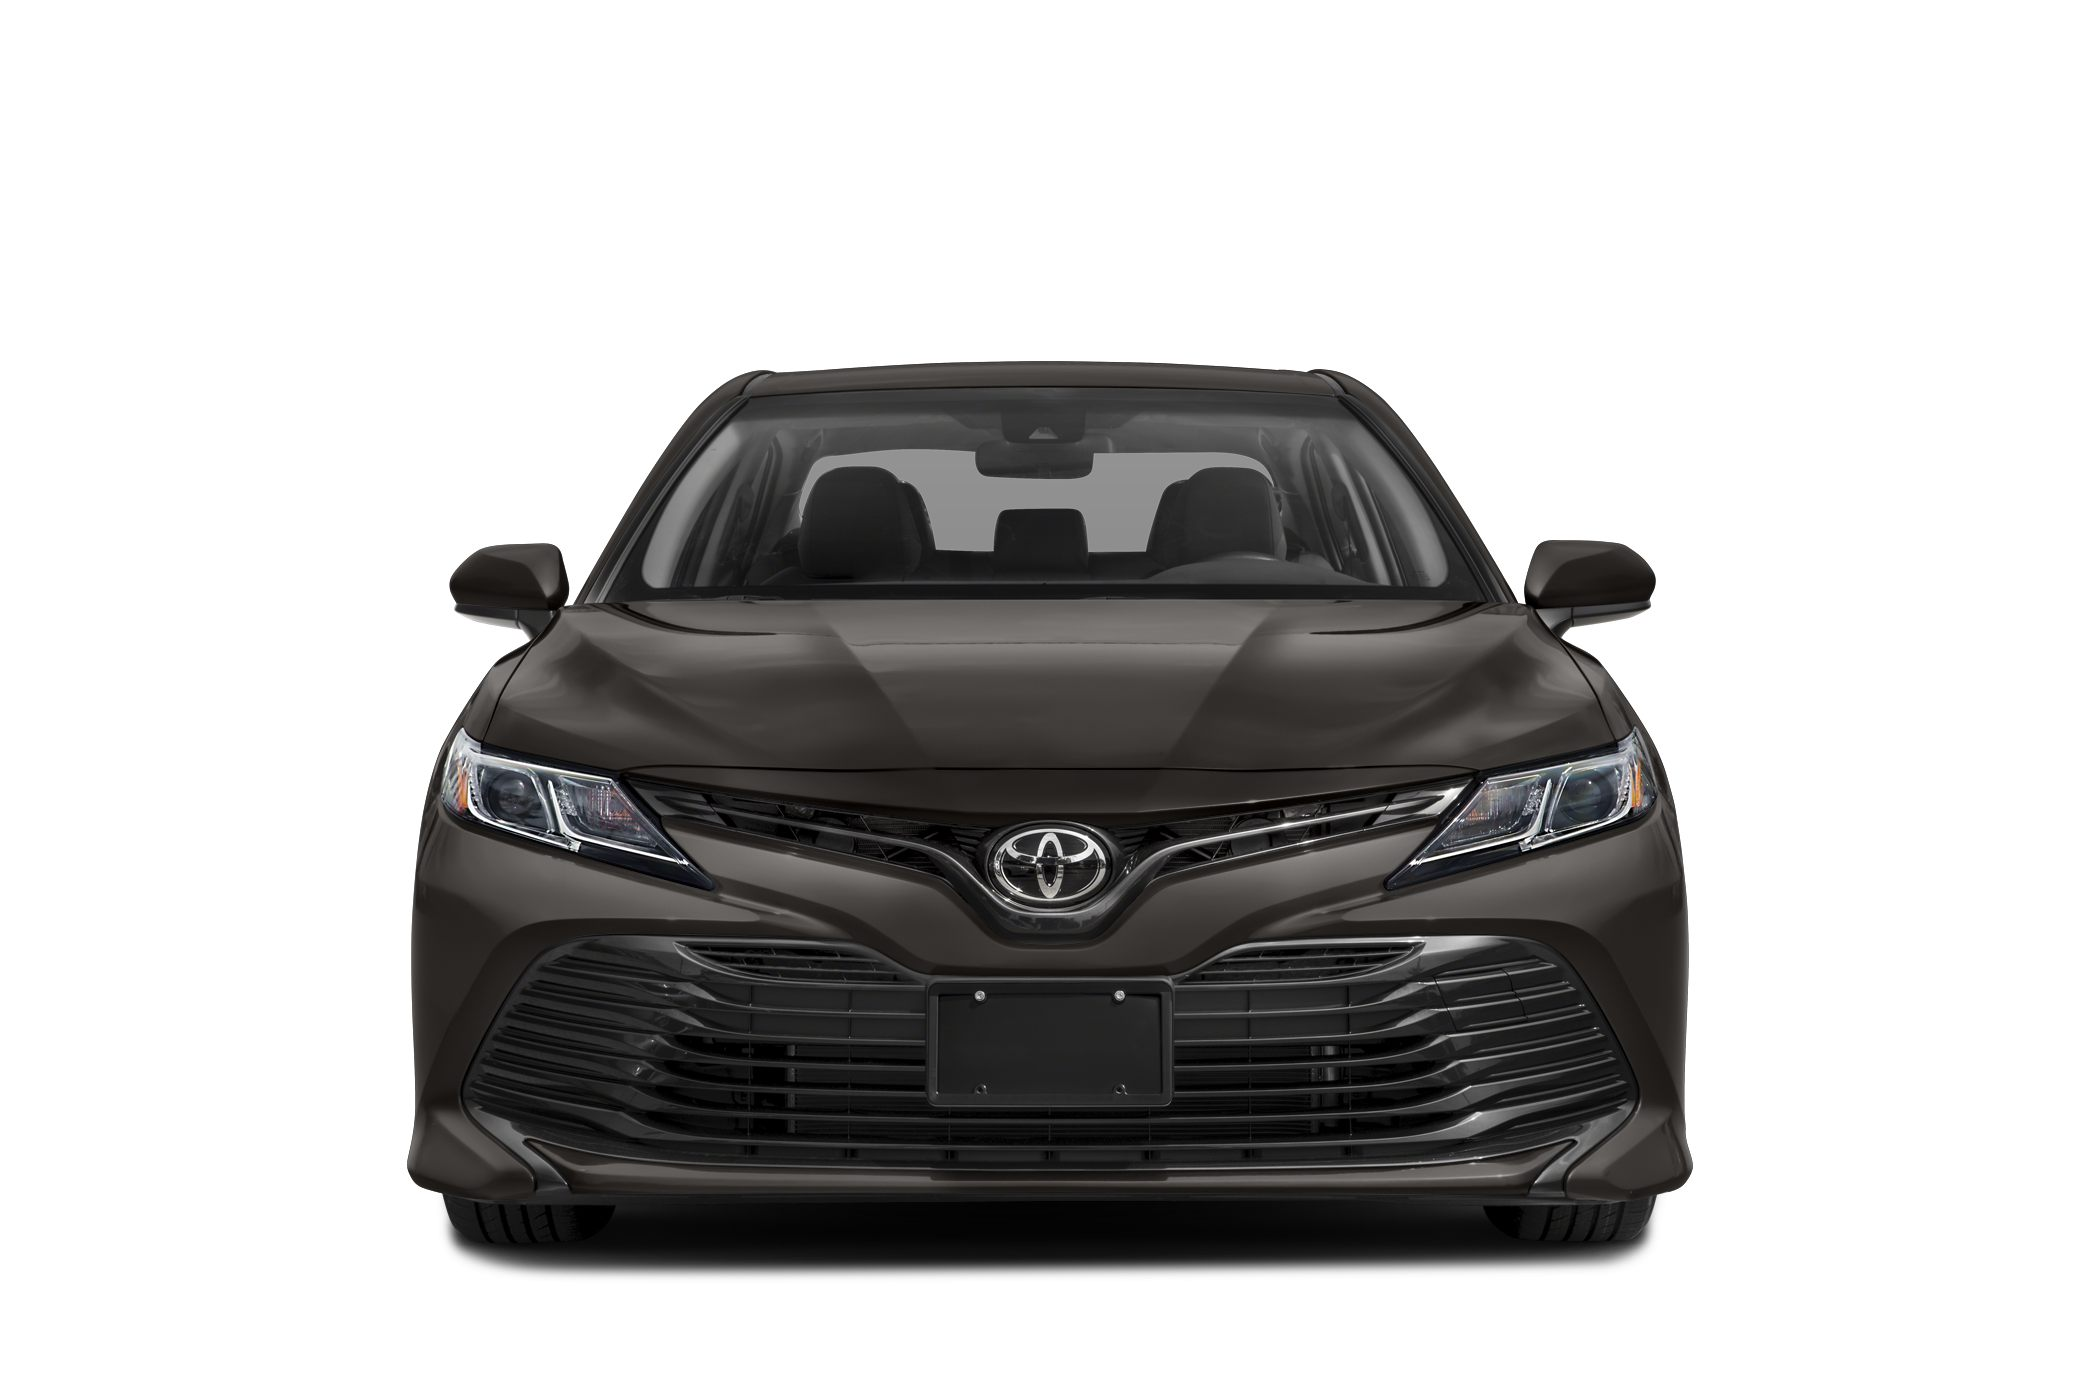 2019 Toyota Camry Deals, Prices, Incentives & Leases ...